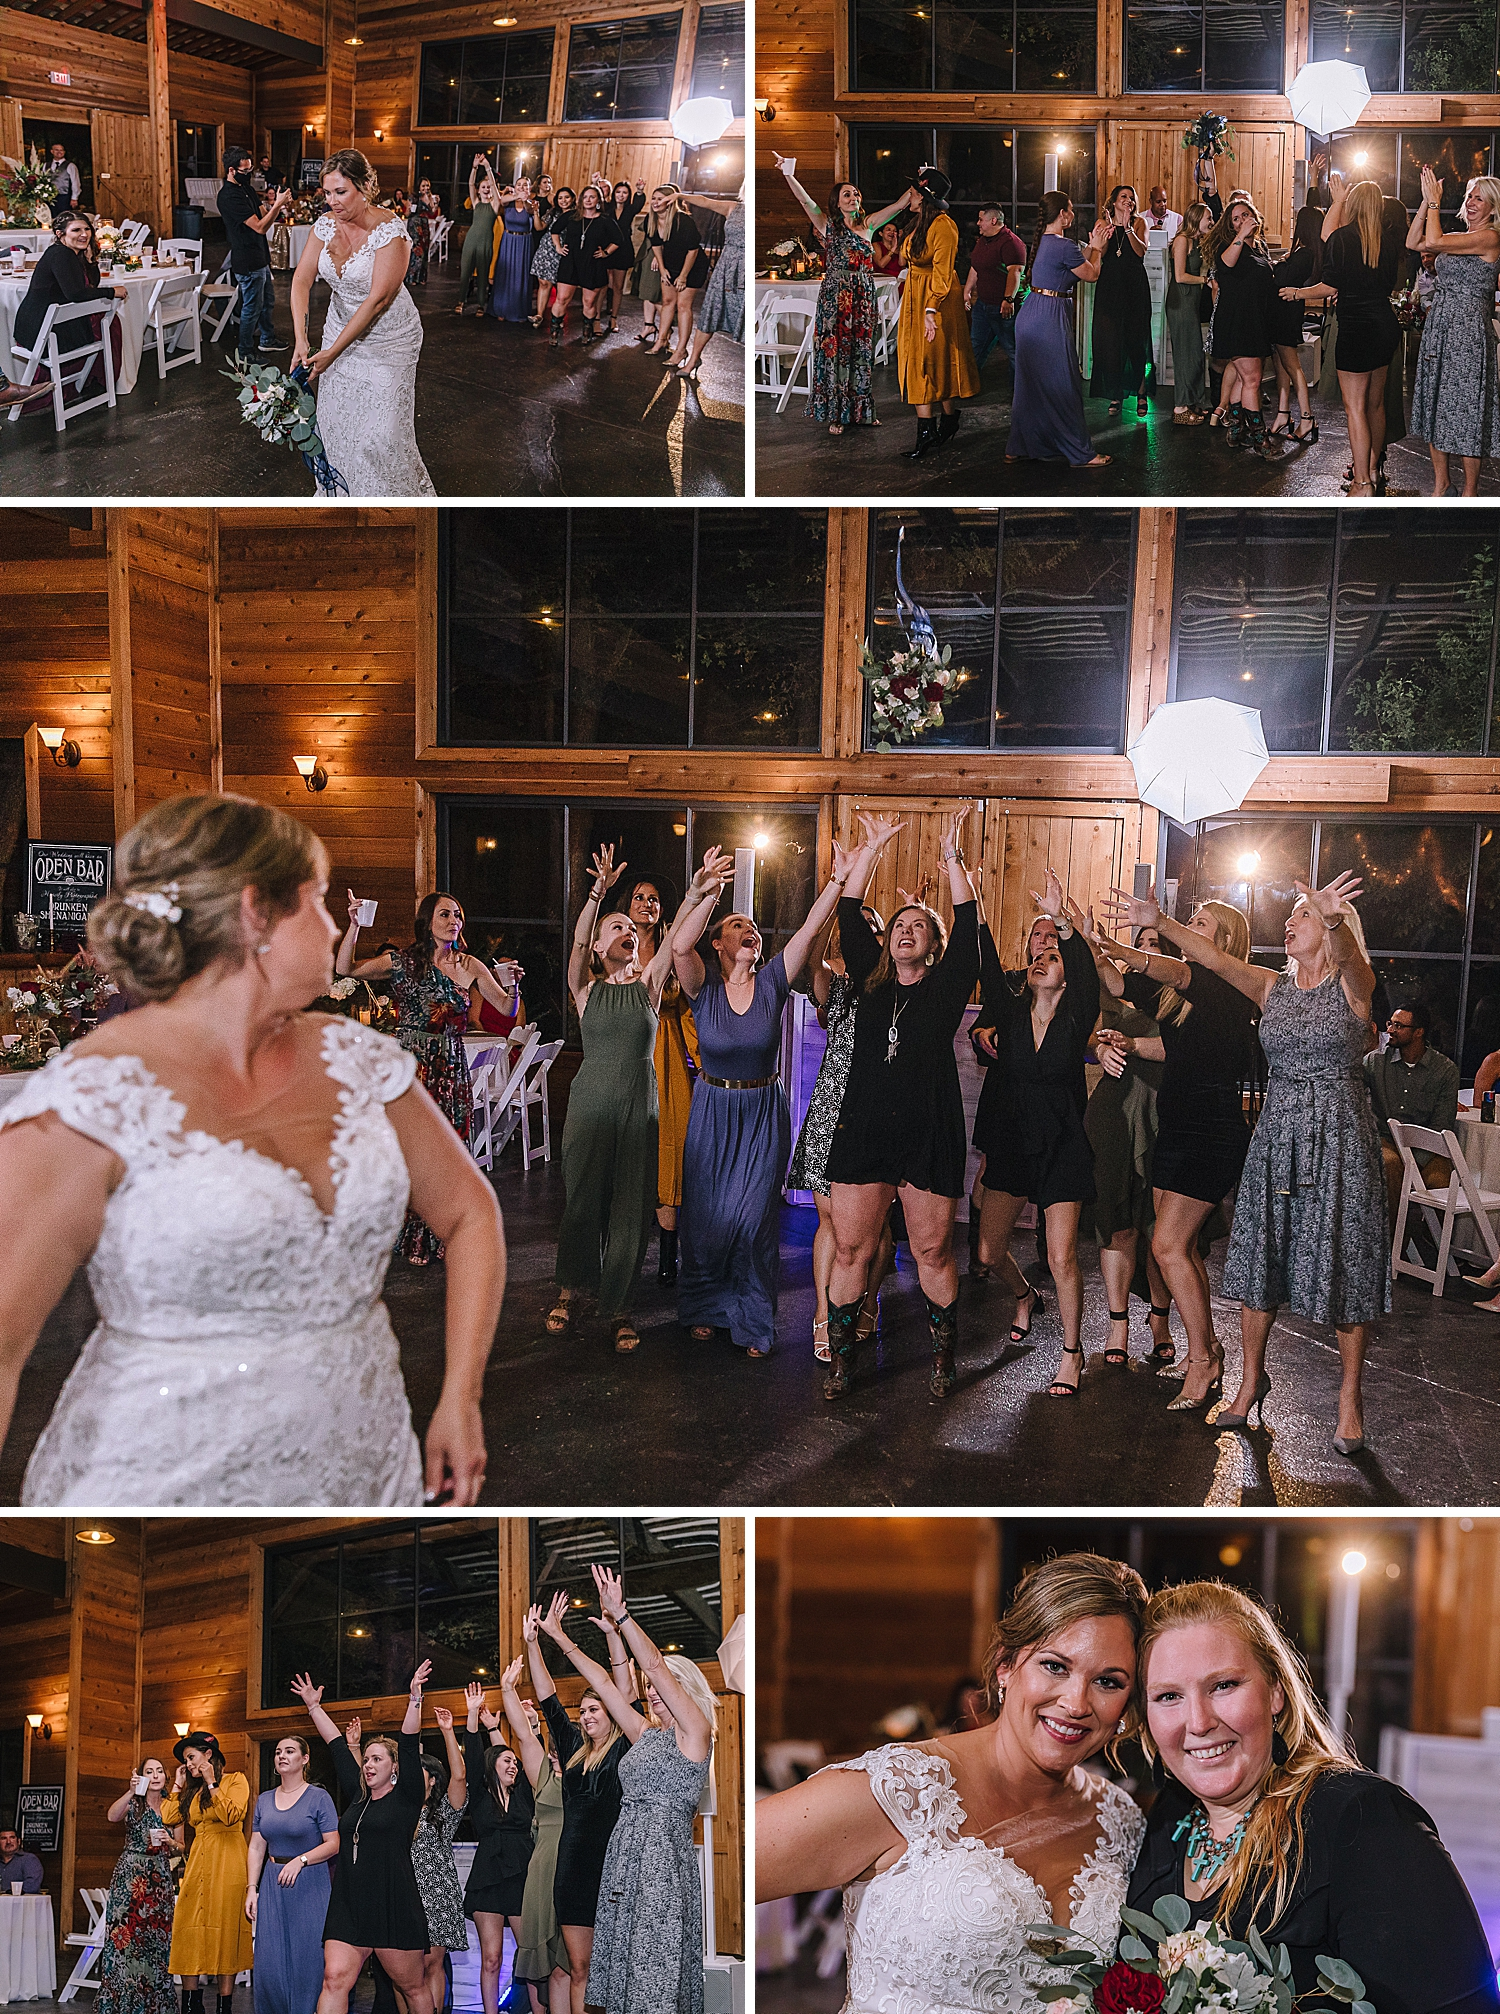 Geronimo-Oaks-Wedding-Venue-Seguin-Texas-Elegant-Navy-Burgundy-Wedding-Carly-Barton-Photography_0081.jpg